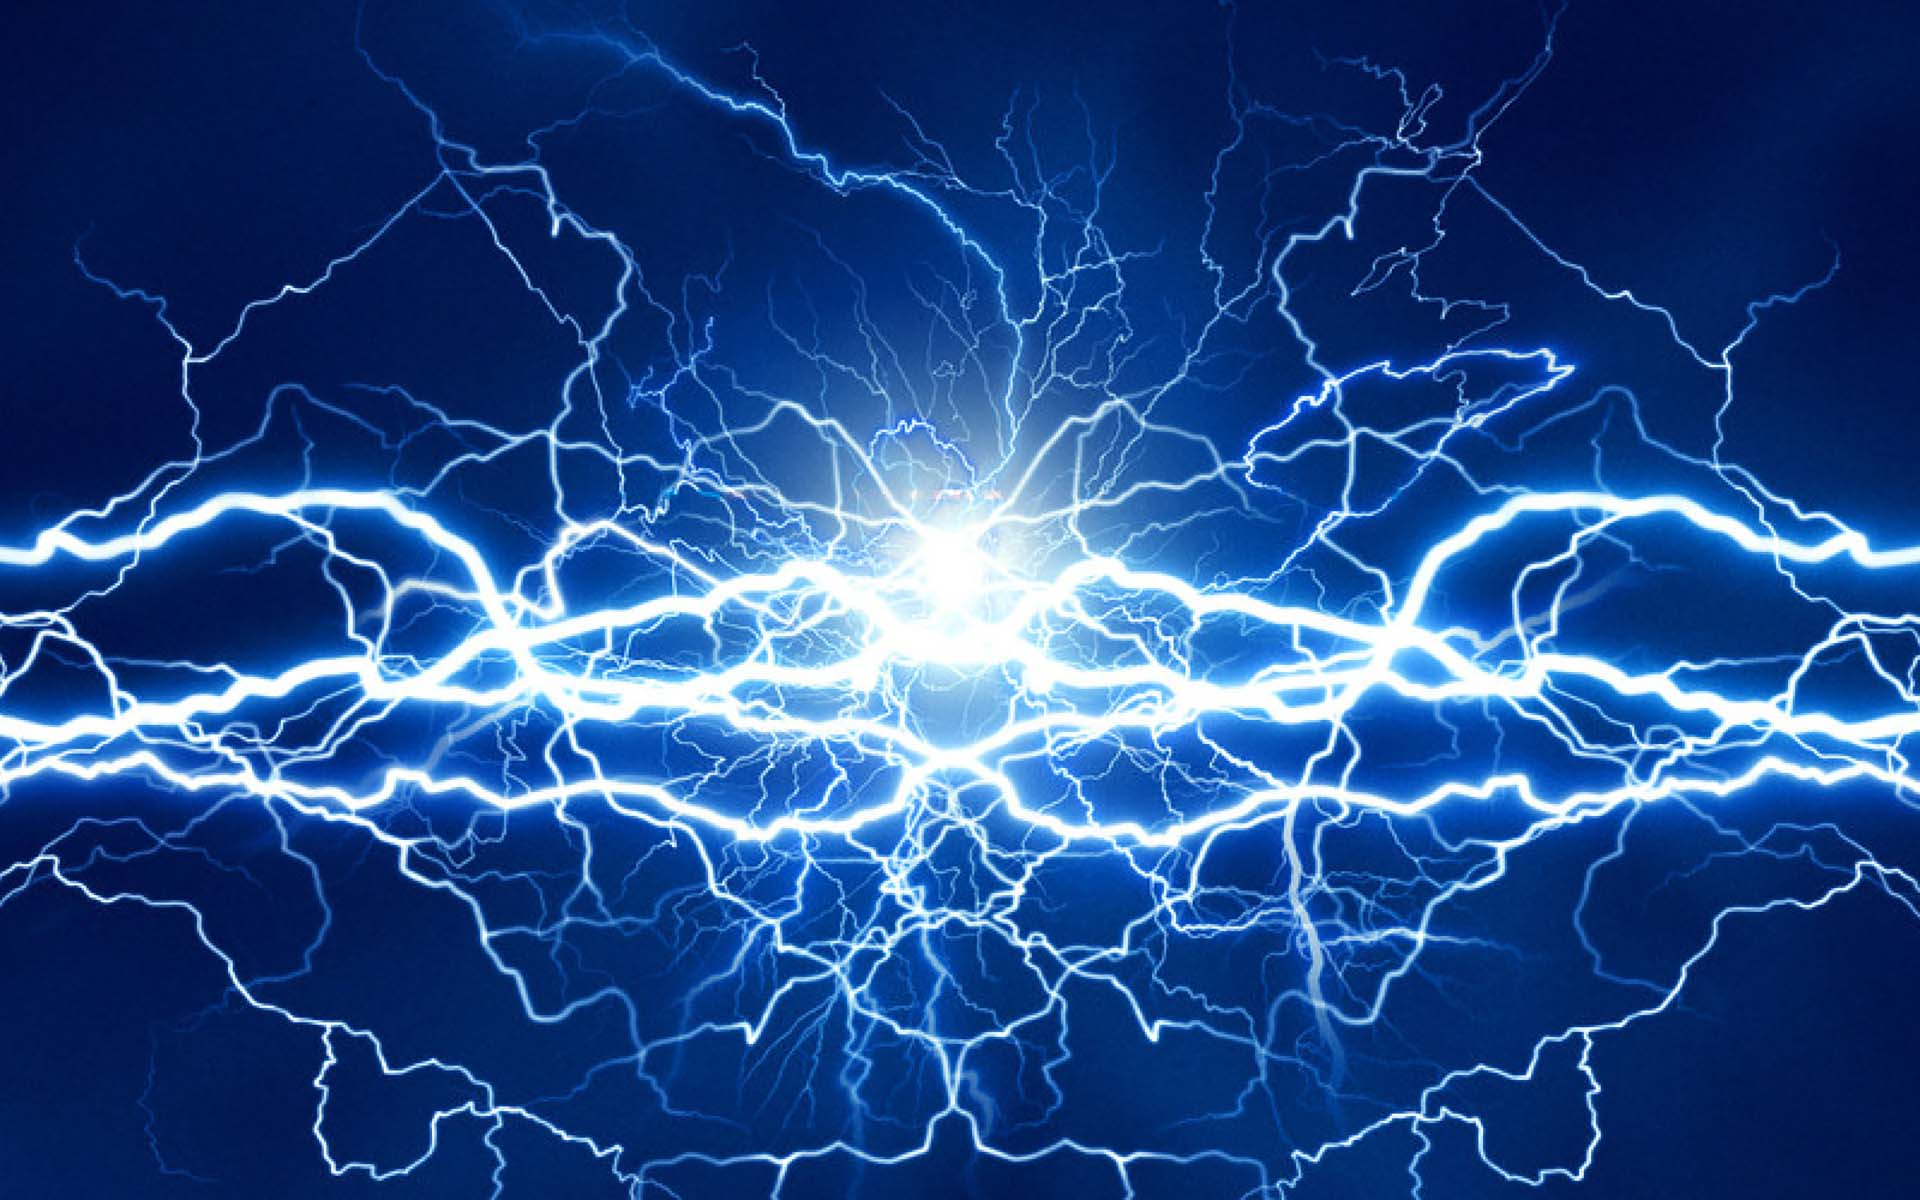 Lightning Network 'Really Does' Solve Bitcoin Scaling: Andreas Antonopoulos